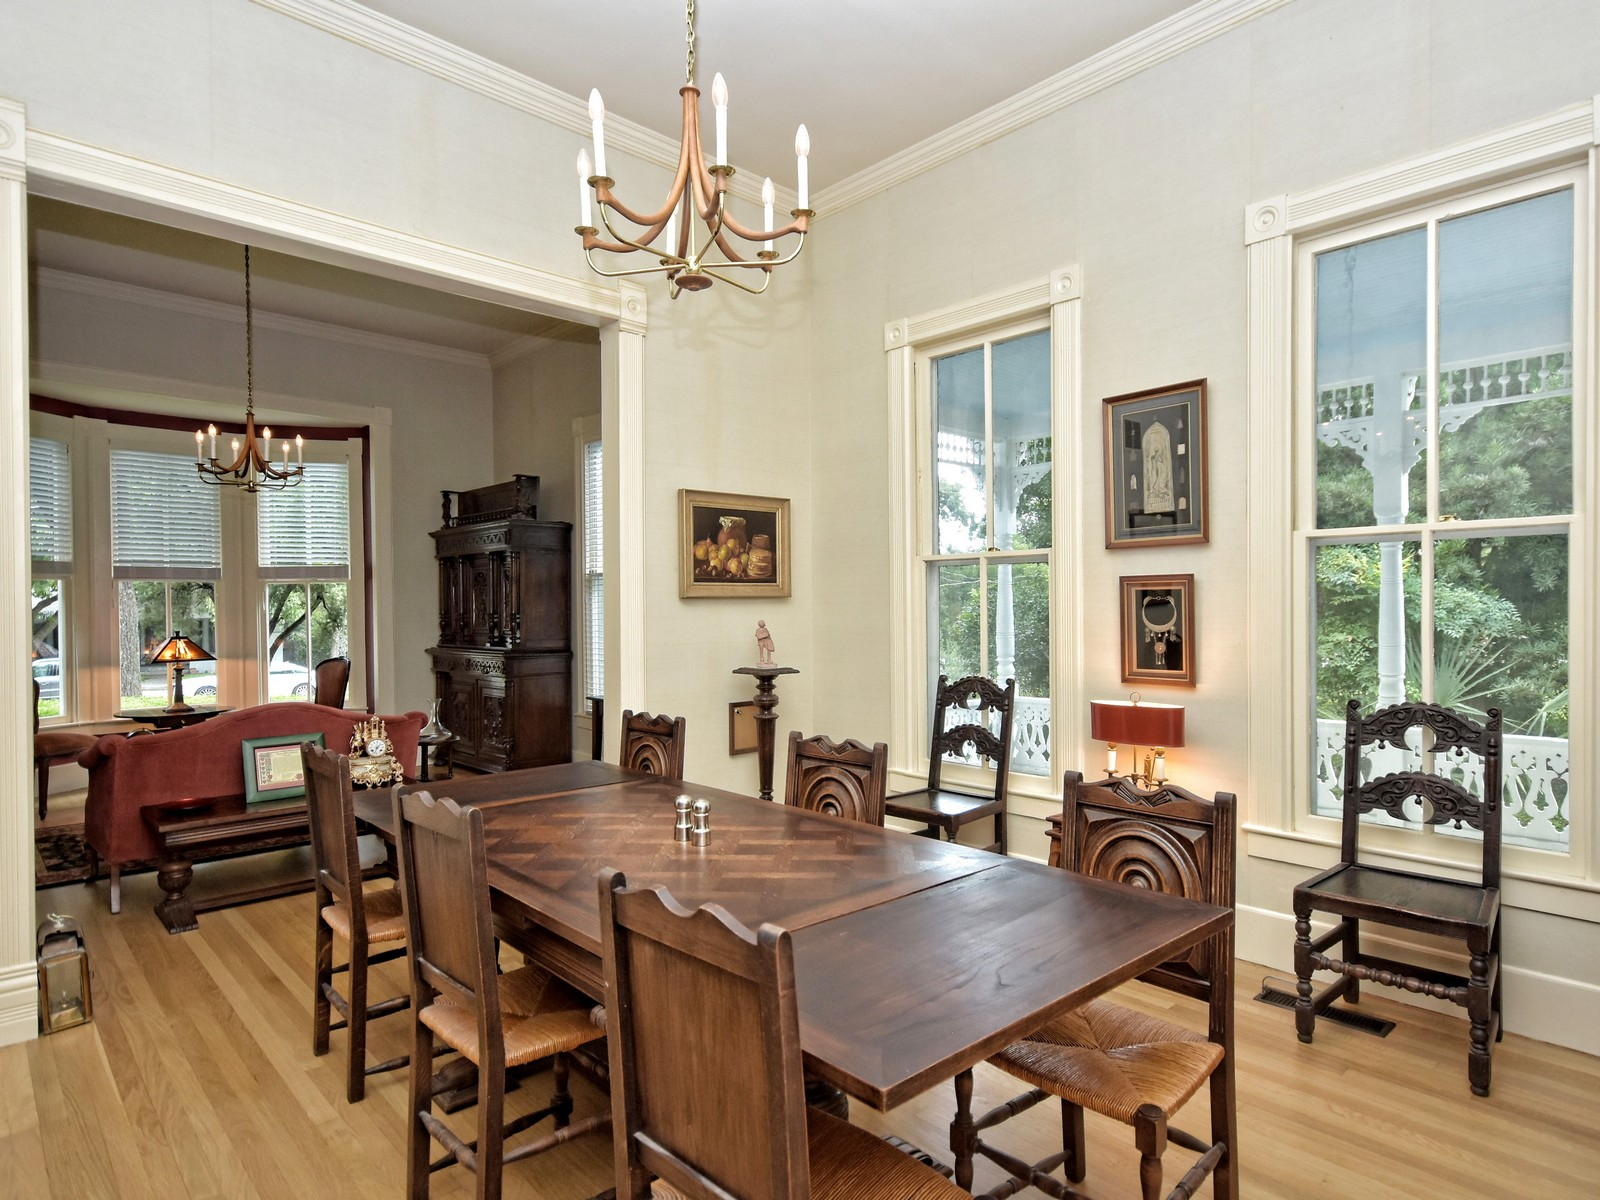 Additional photo for property listing at Historic Jewel Built in 1863 581 W Coll New Braunfels, Texas 78130 Estados Unidos